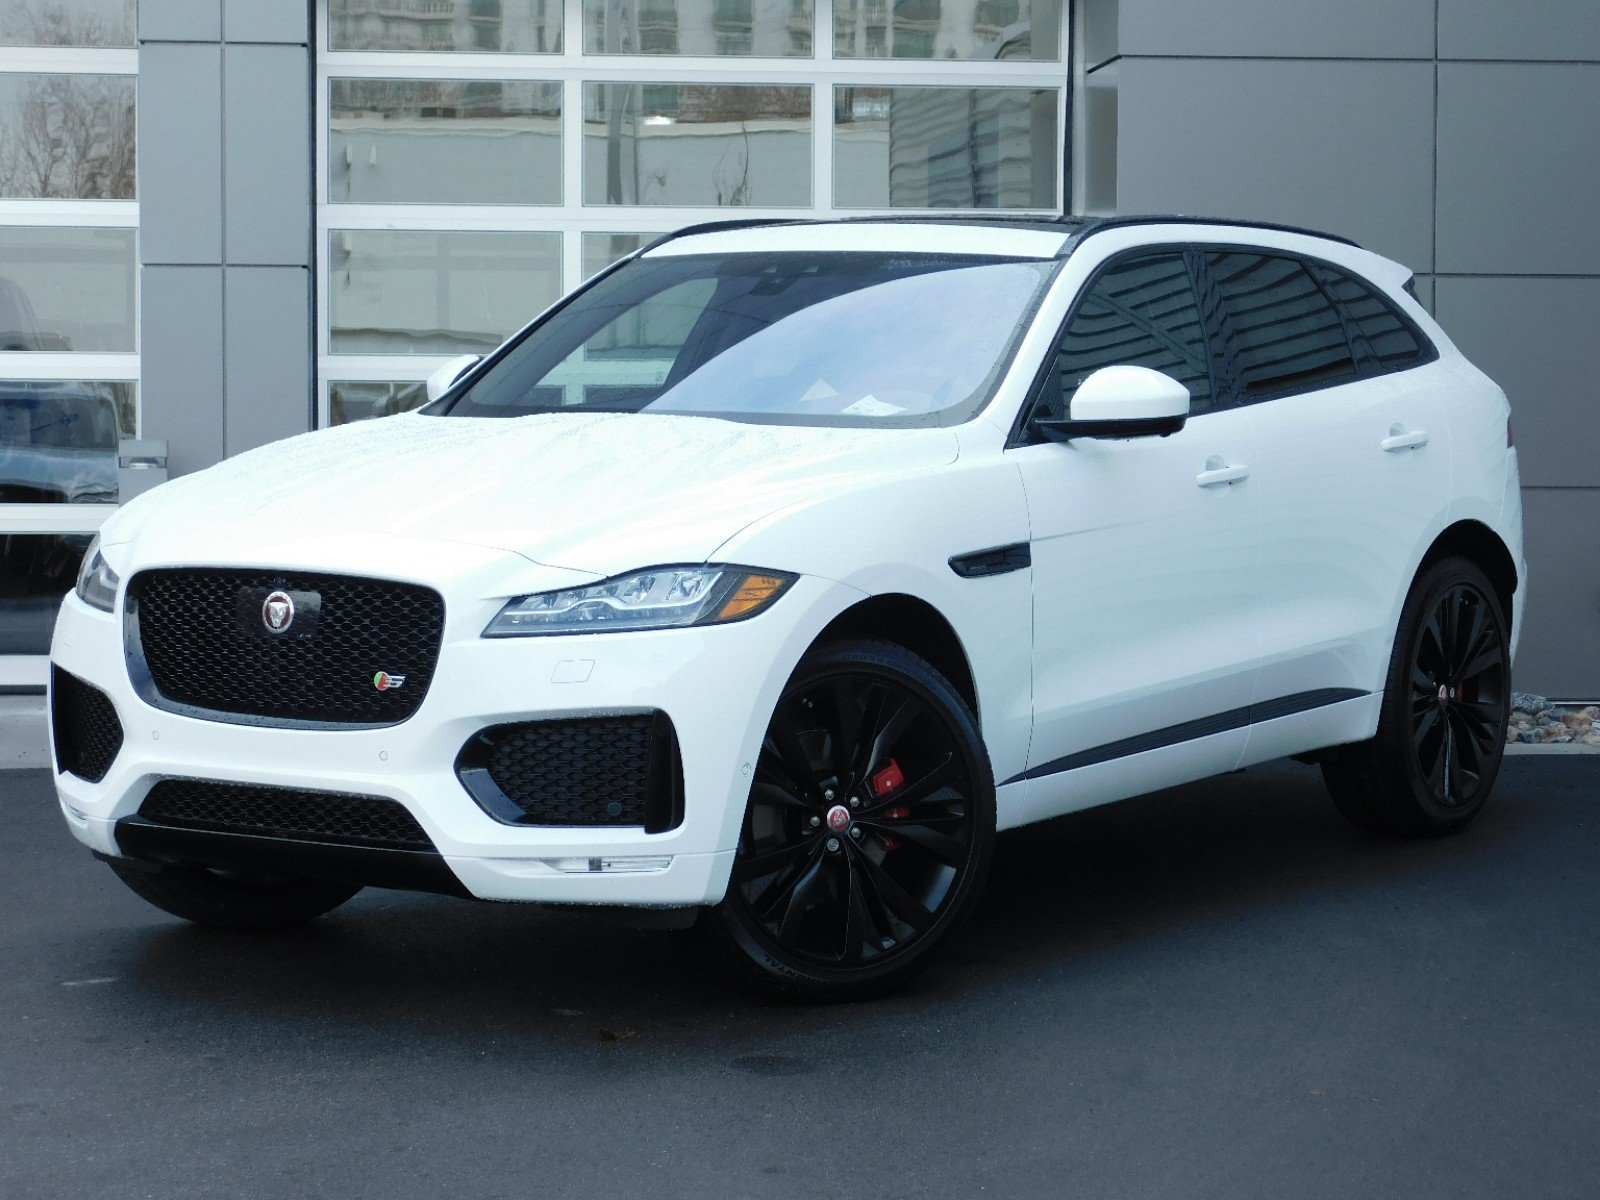 69 All New Suv Jaguar 2019 Exterior with Suv Jaguar 2019